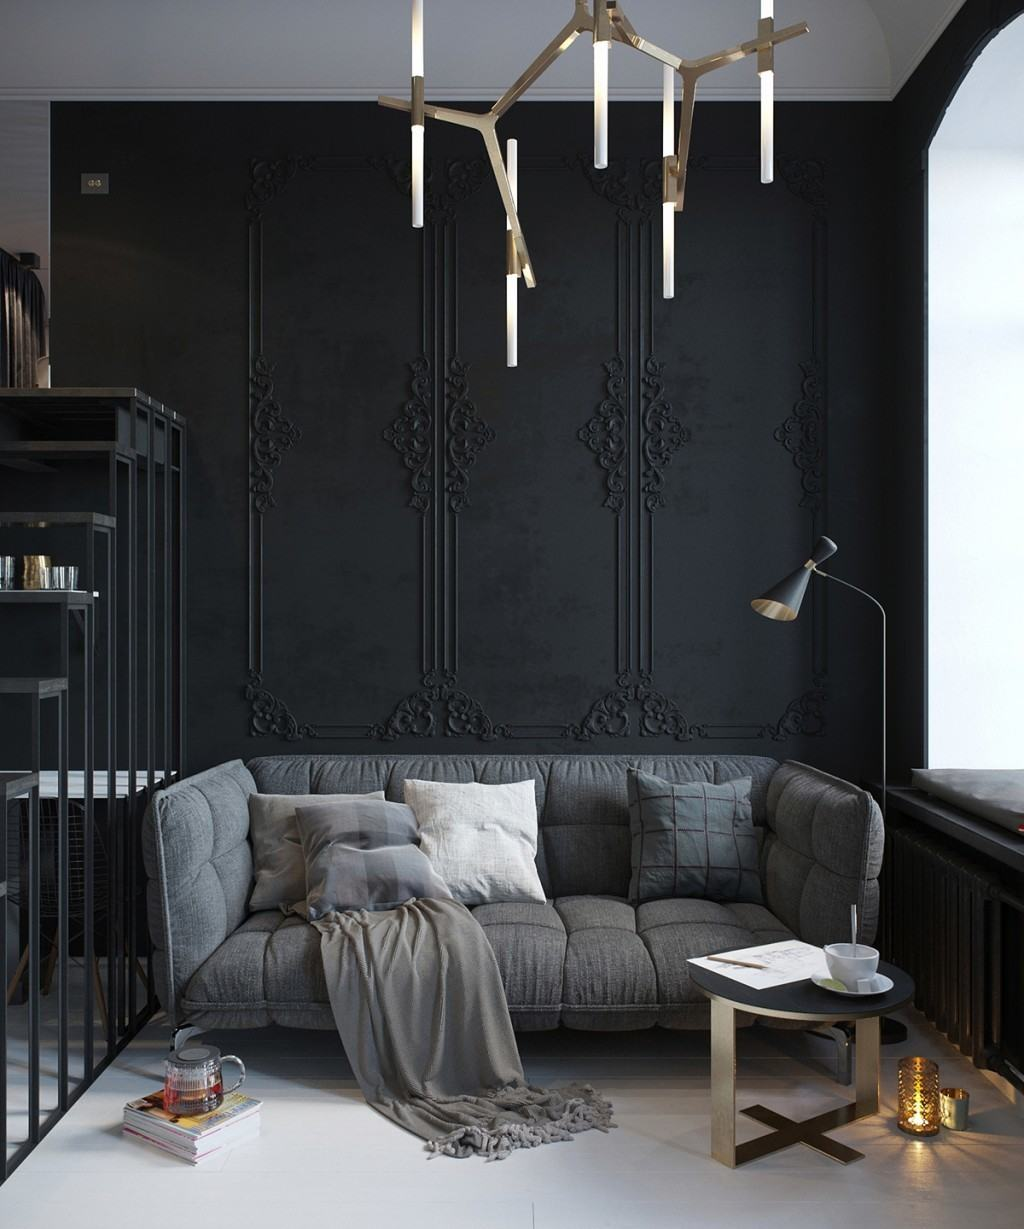 Black Wall Interior with moulding designs for texture